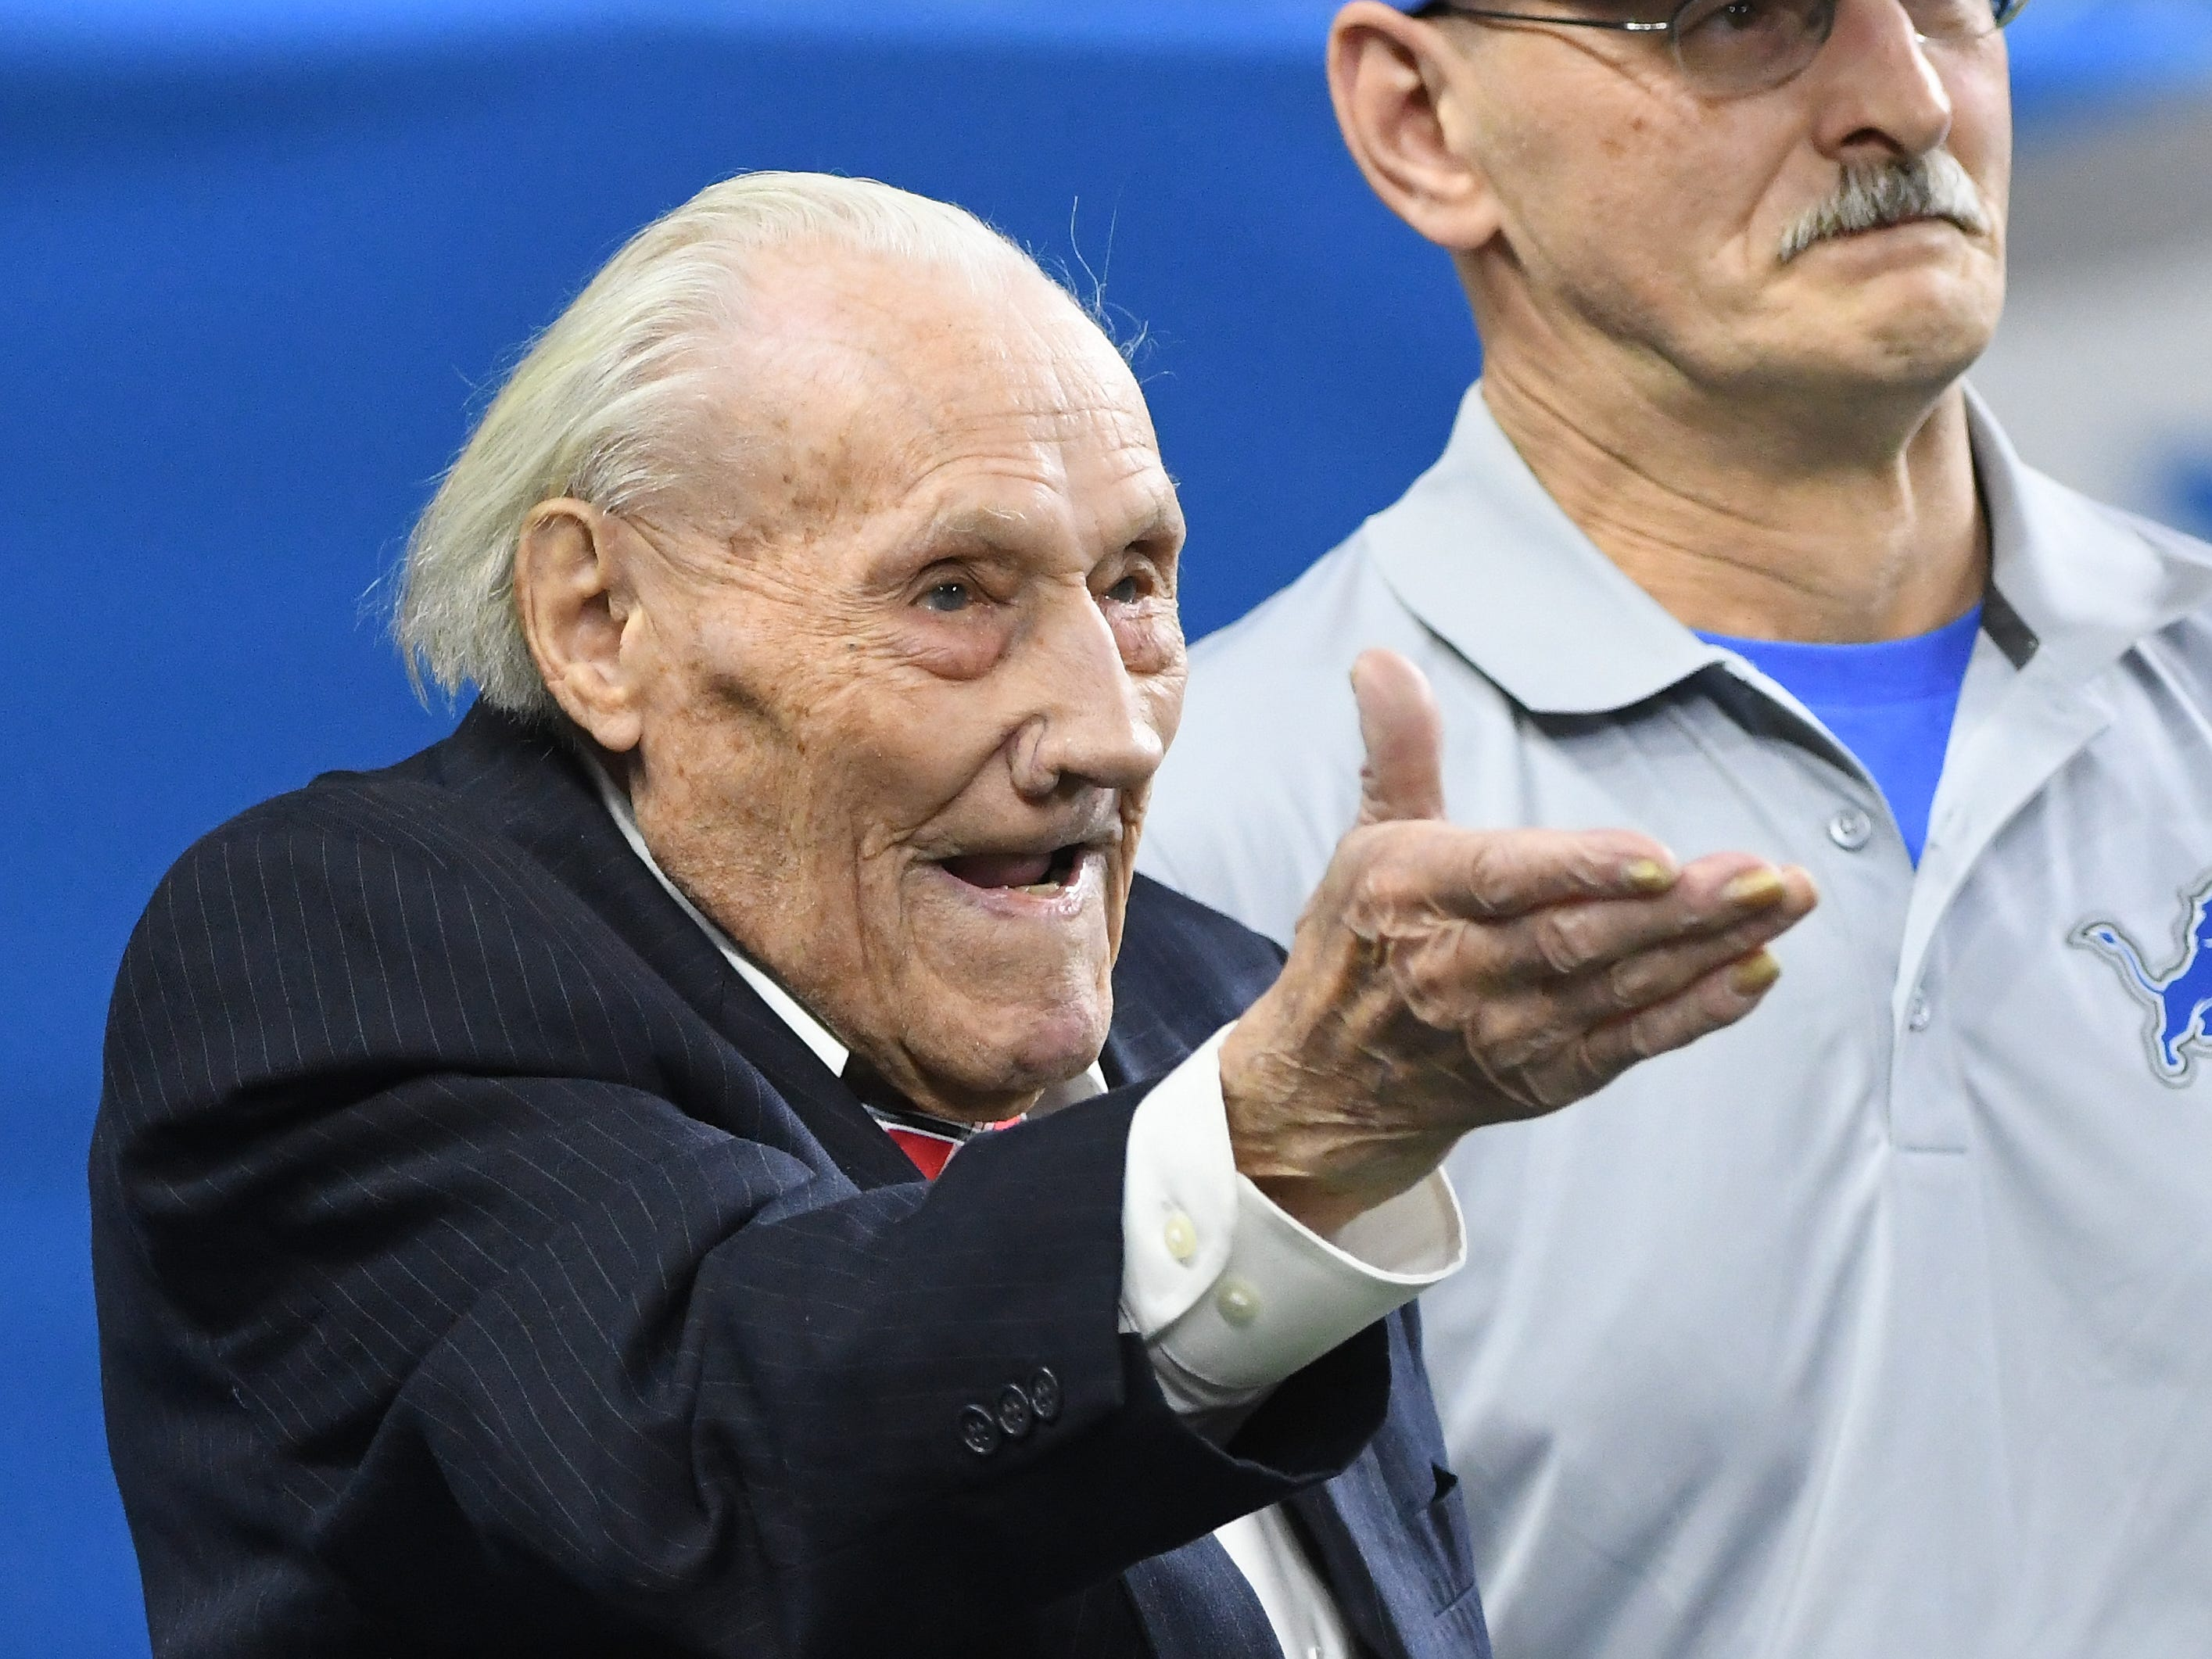 106 year old WWII U.S. Army photographer Stanley Wrona is recognized during a break in the action.